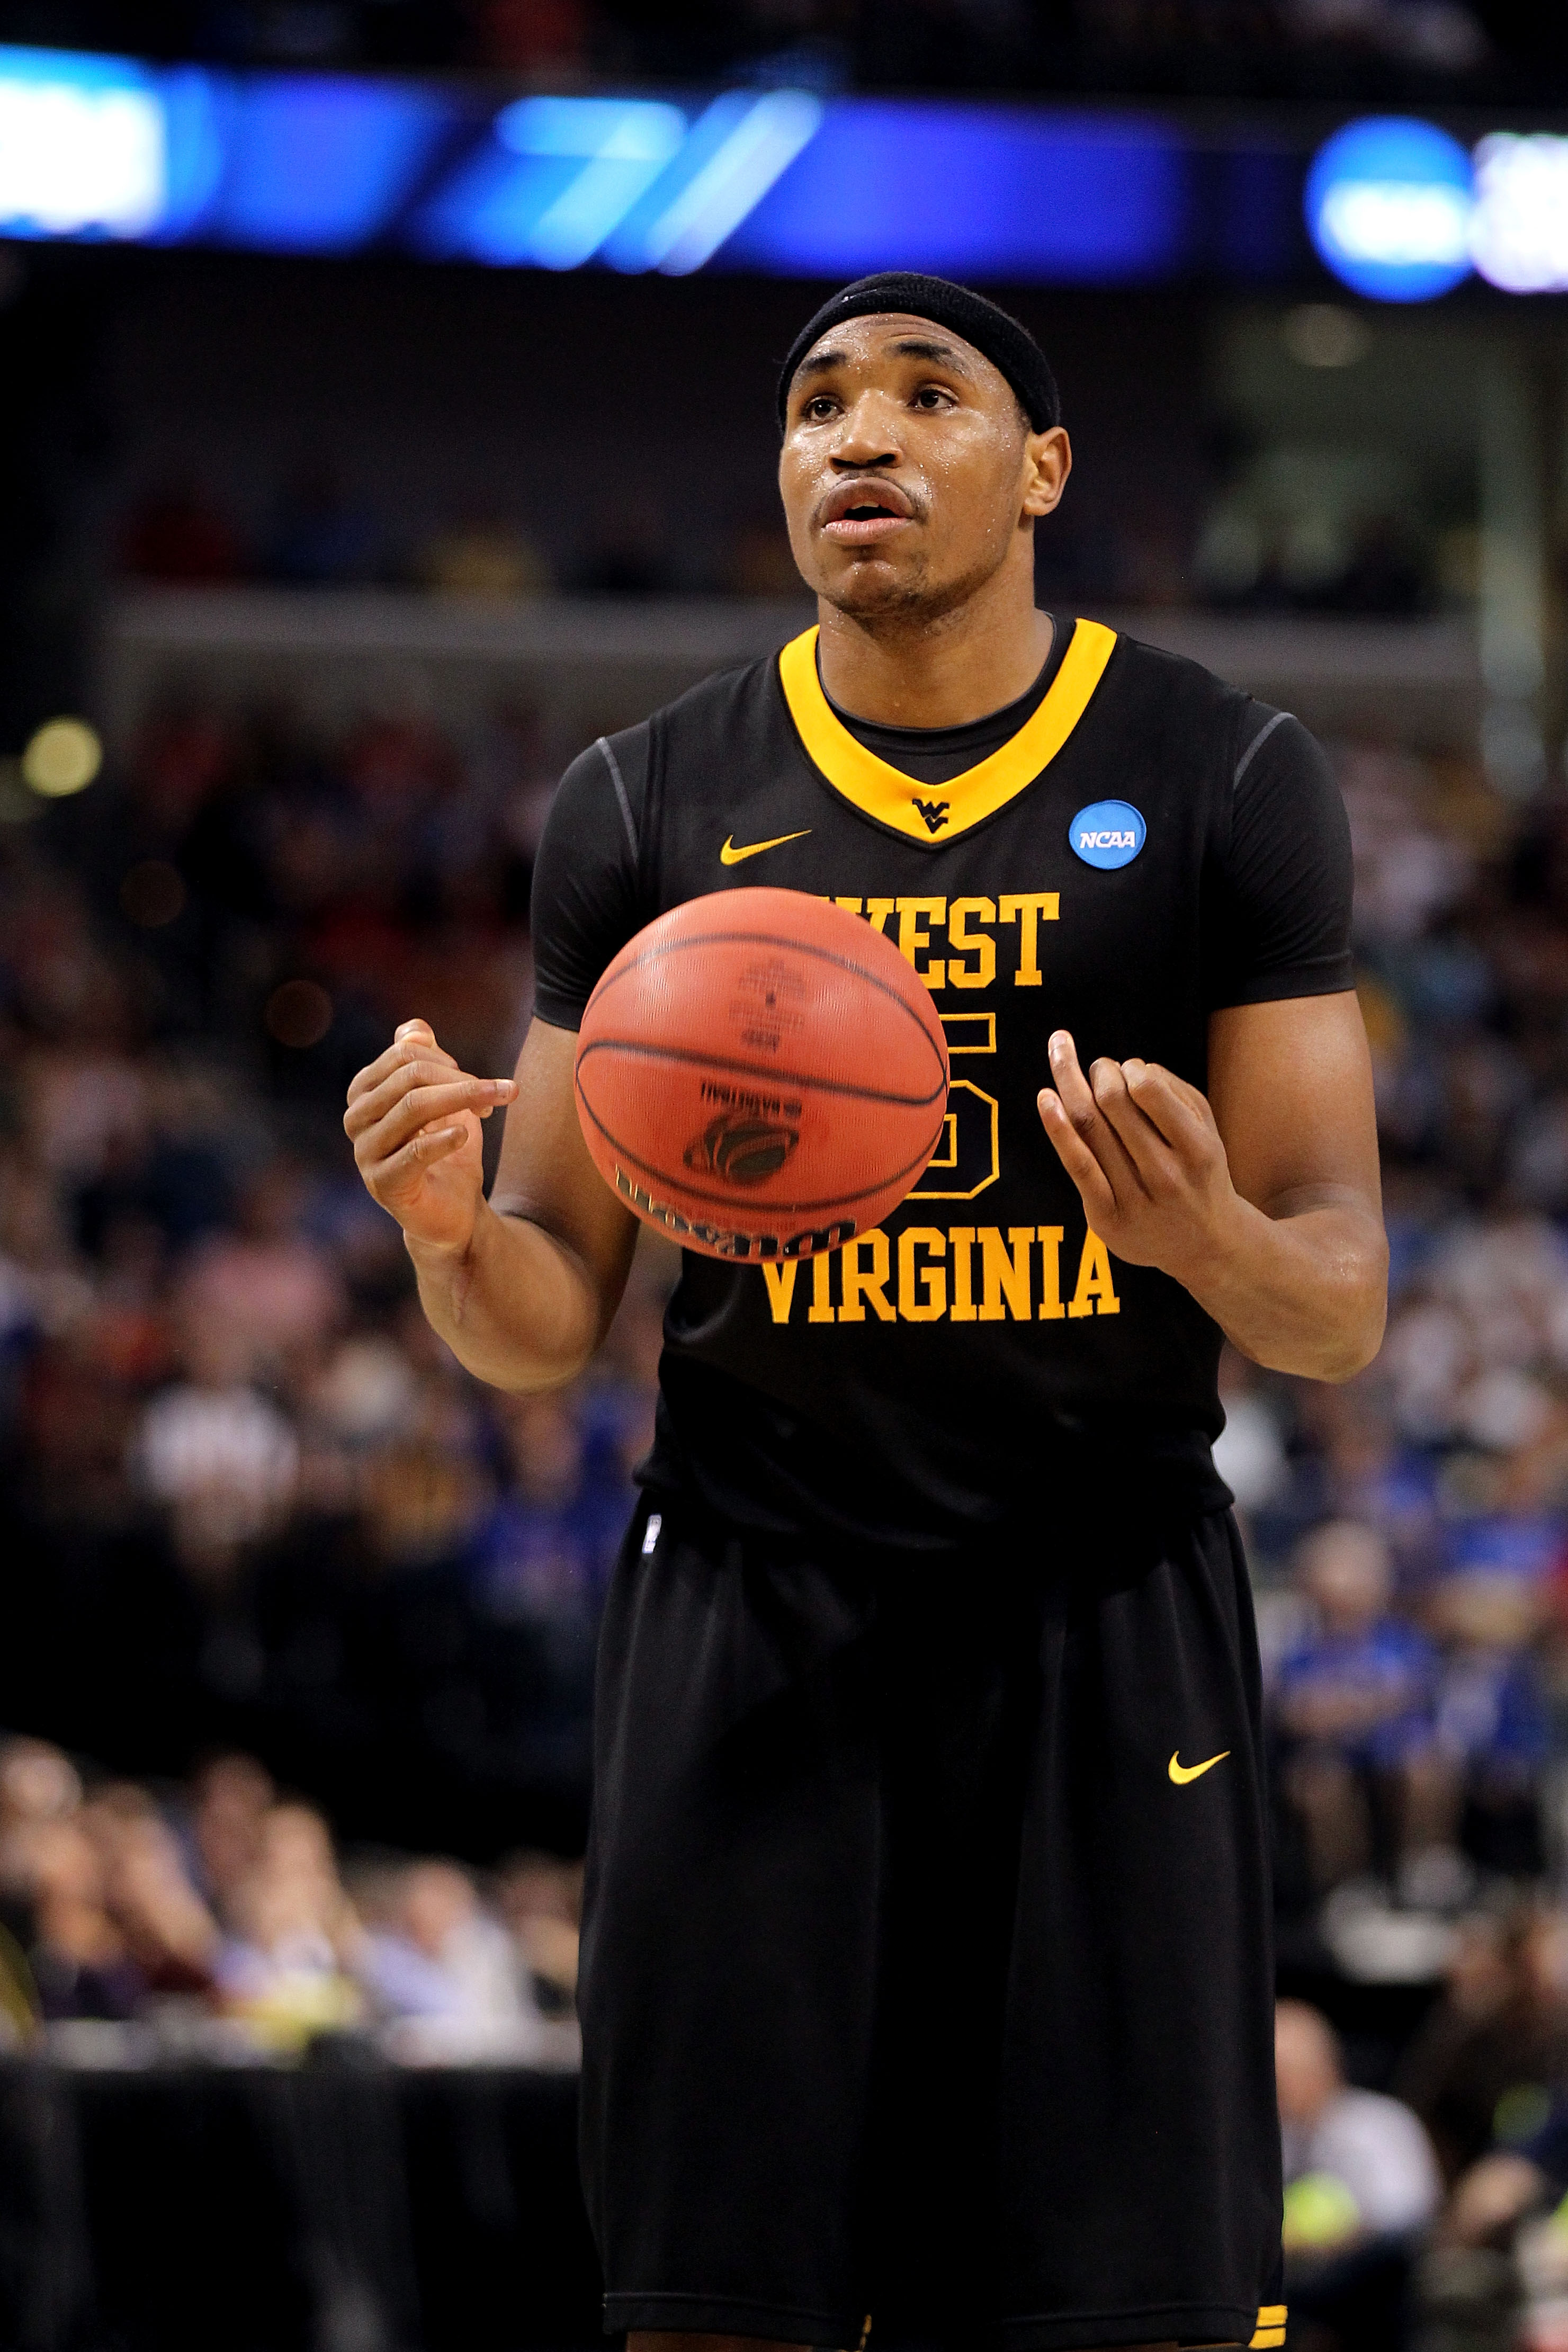 TAMPA, FL - MARCH 19:  Kevin Jones #5 of the West Virginia Mountaineers gets set to shoot a free throw attempt against the Kentucky Wildcats during the third round of the 2011 NCAA men's basketball tournament at St. Pete Times Forum on March 19, 2011 in T